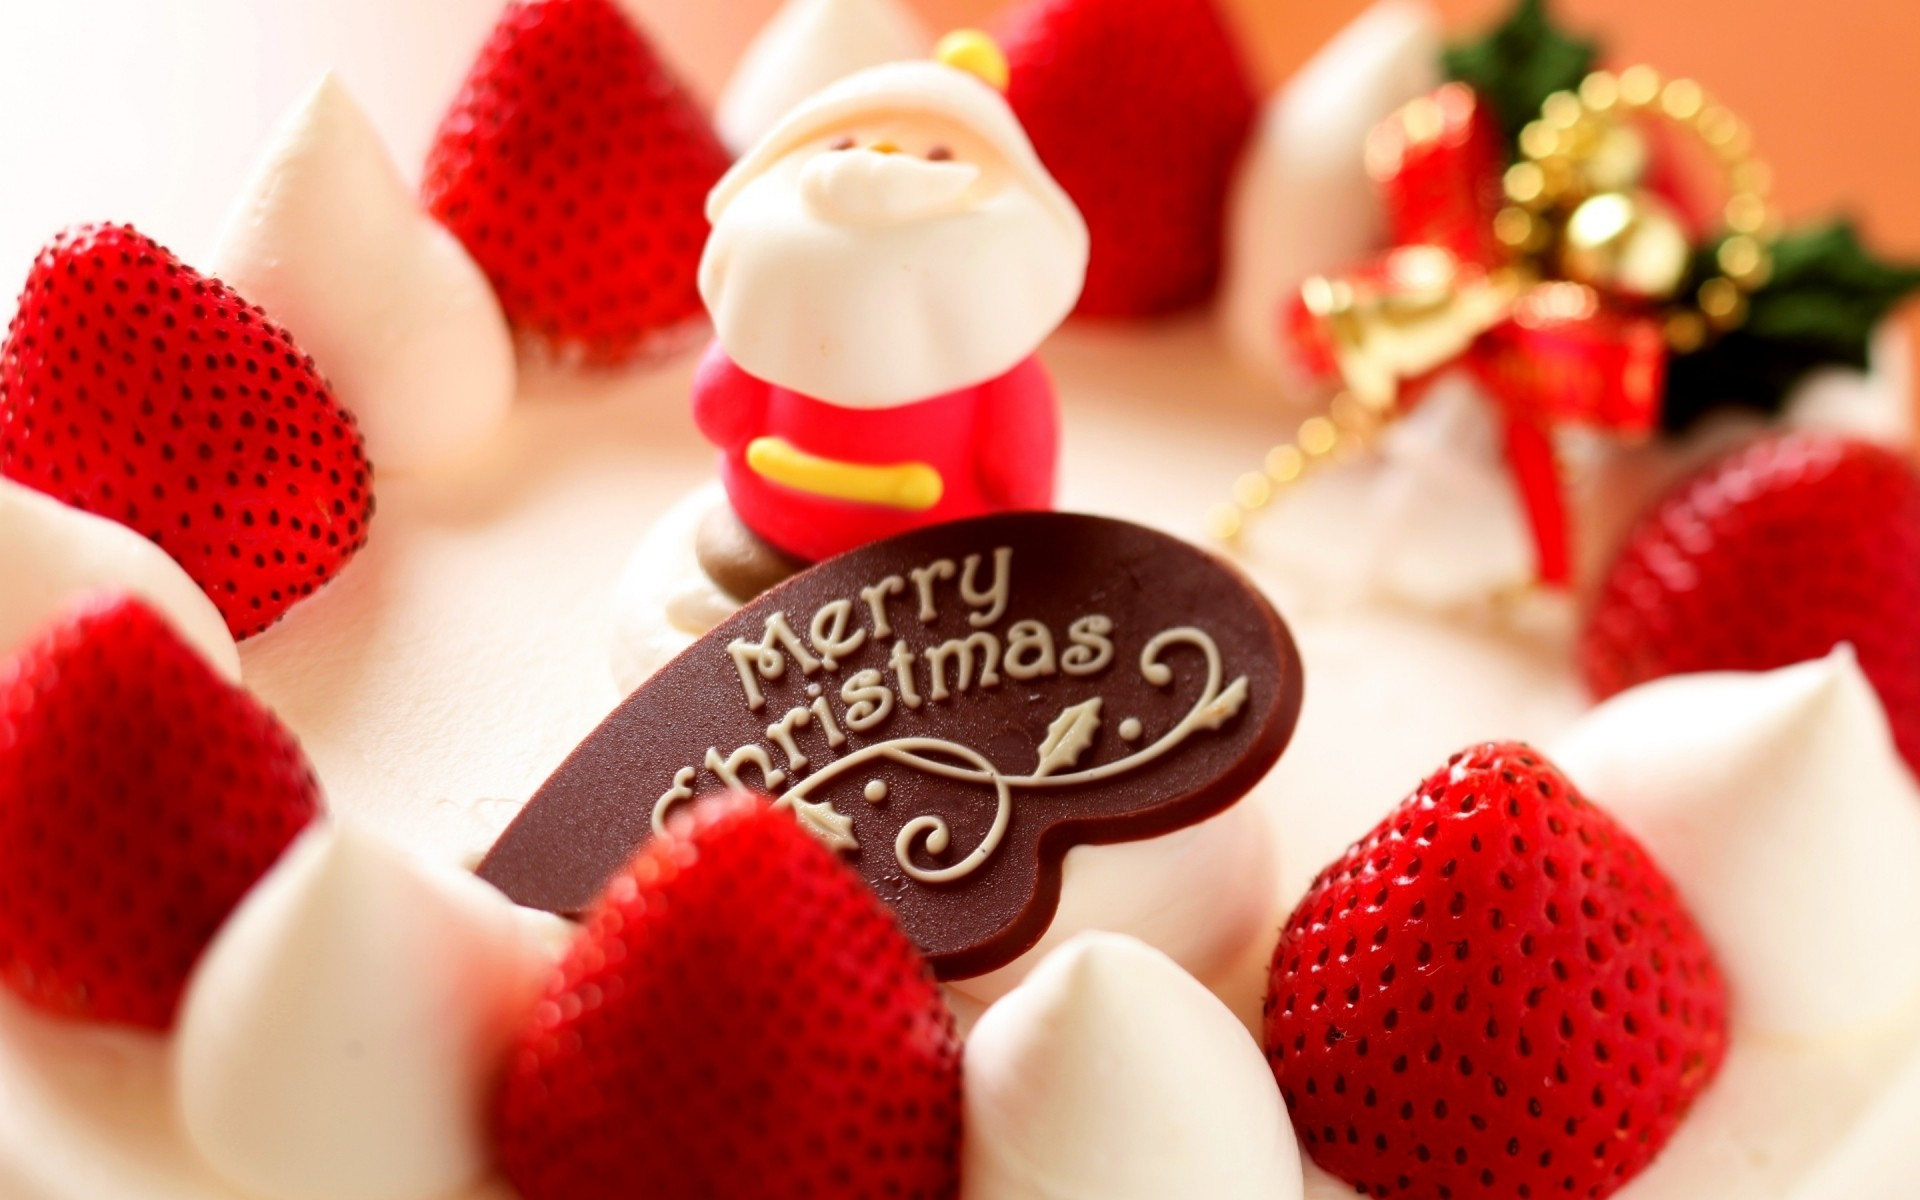 christmas strawberry delicious sweet cream sugar candy love berry romance indulgence fruit baking chocolate shining christmas tart sweets snowman strawberries